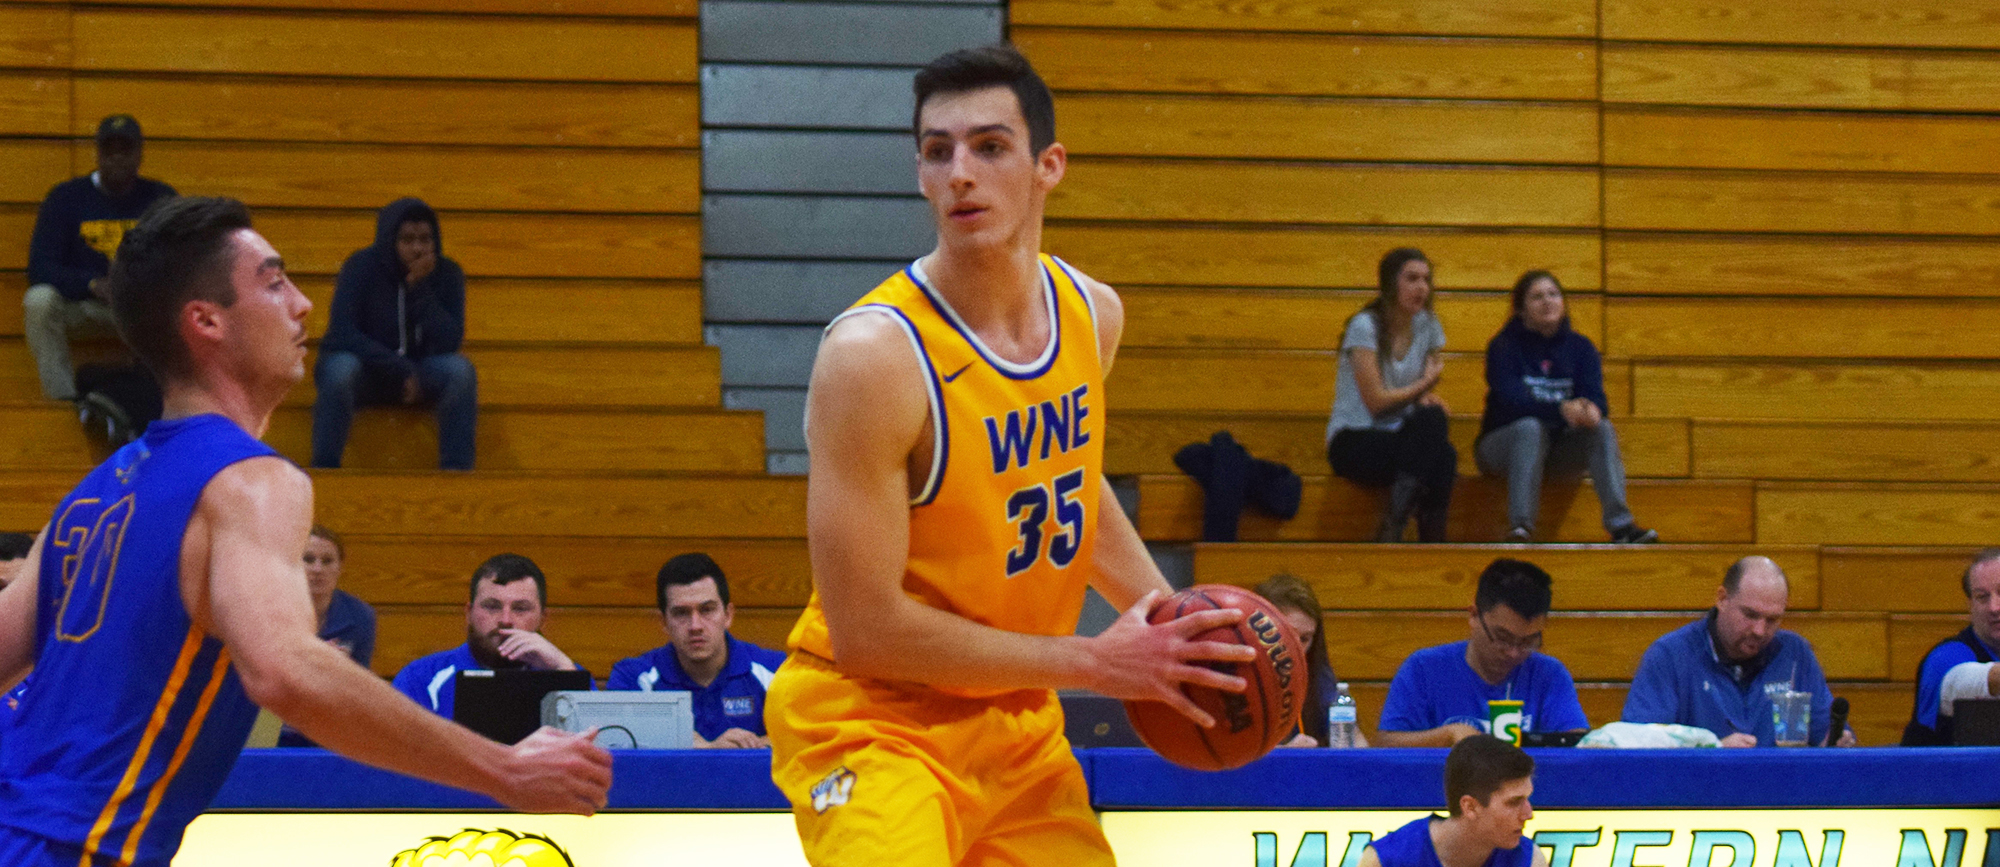 Freshman forward Zach Tavitian posted his first career 20-point game in Western New England's 82-75 loss to Salve Regina on Saturday (photo by Rachael Margossian).